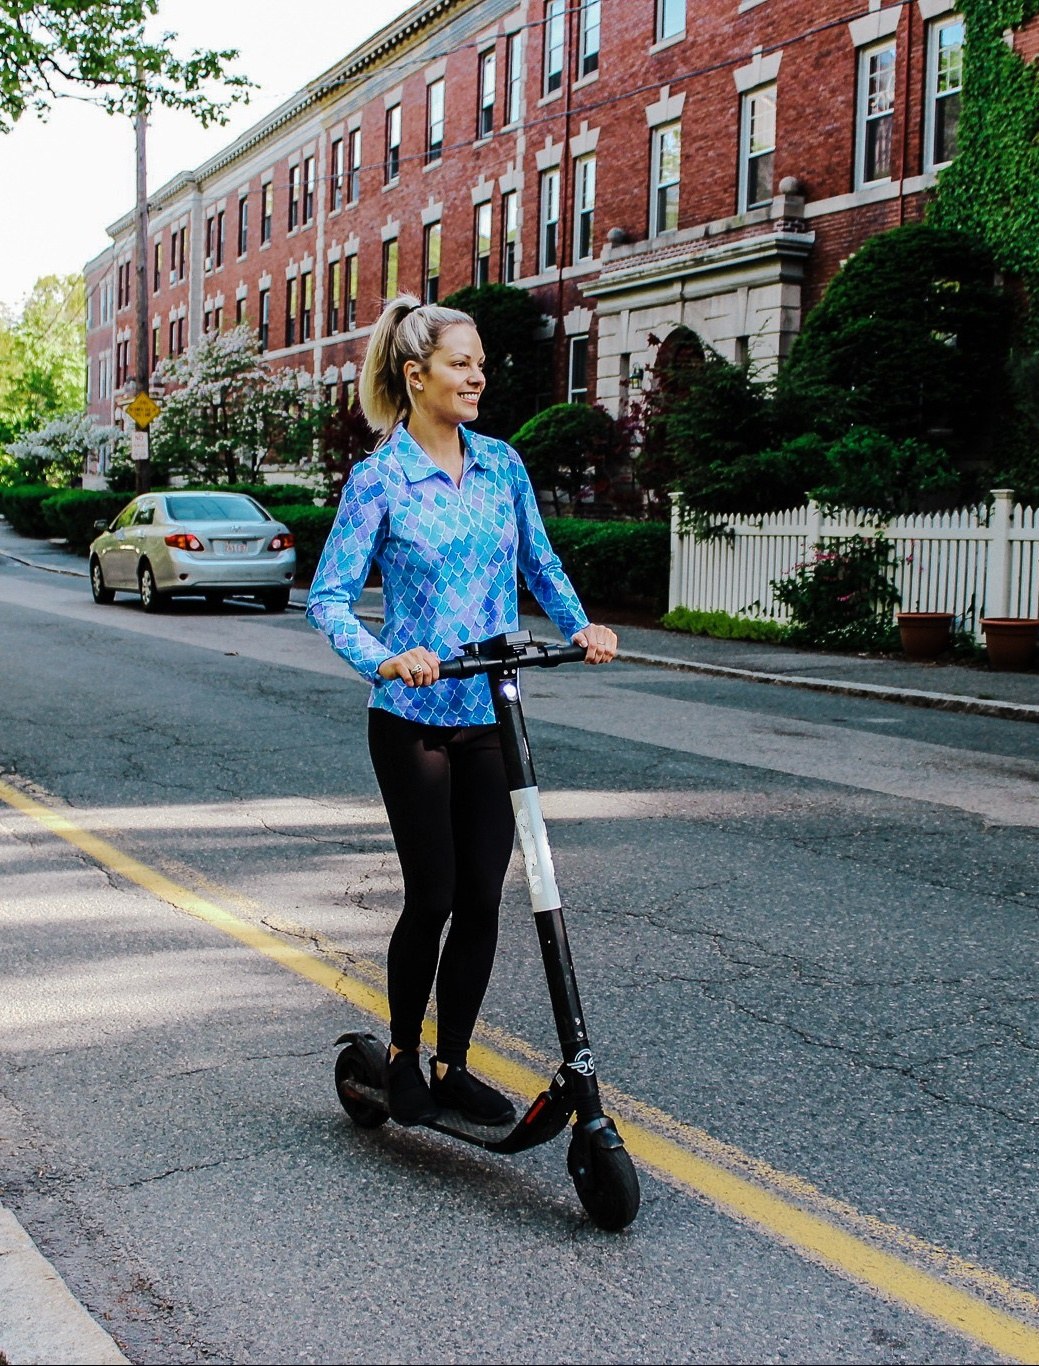 Blonde woman on electric scooter.